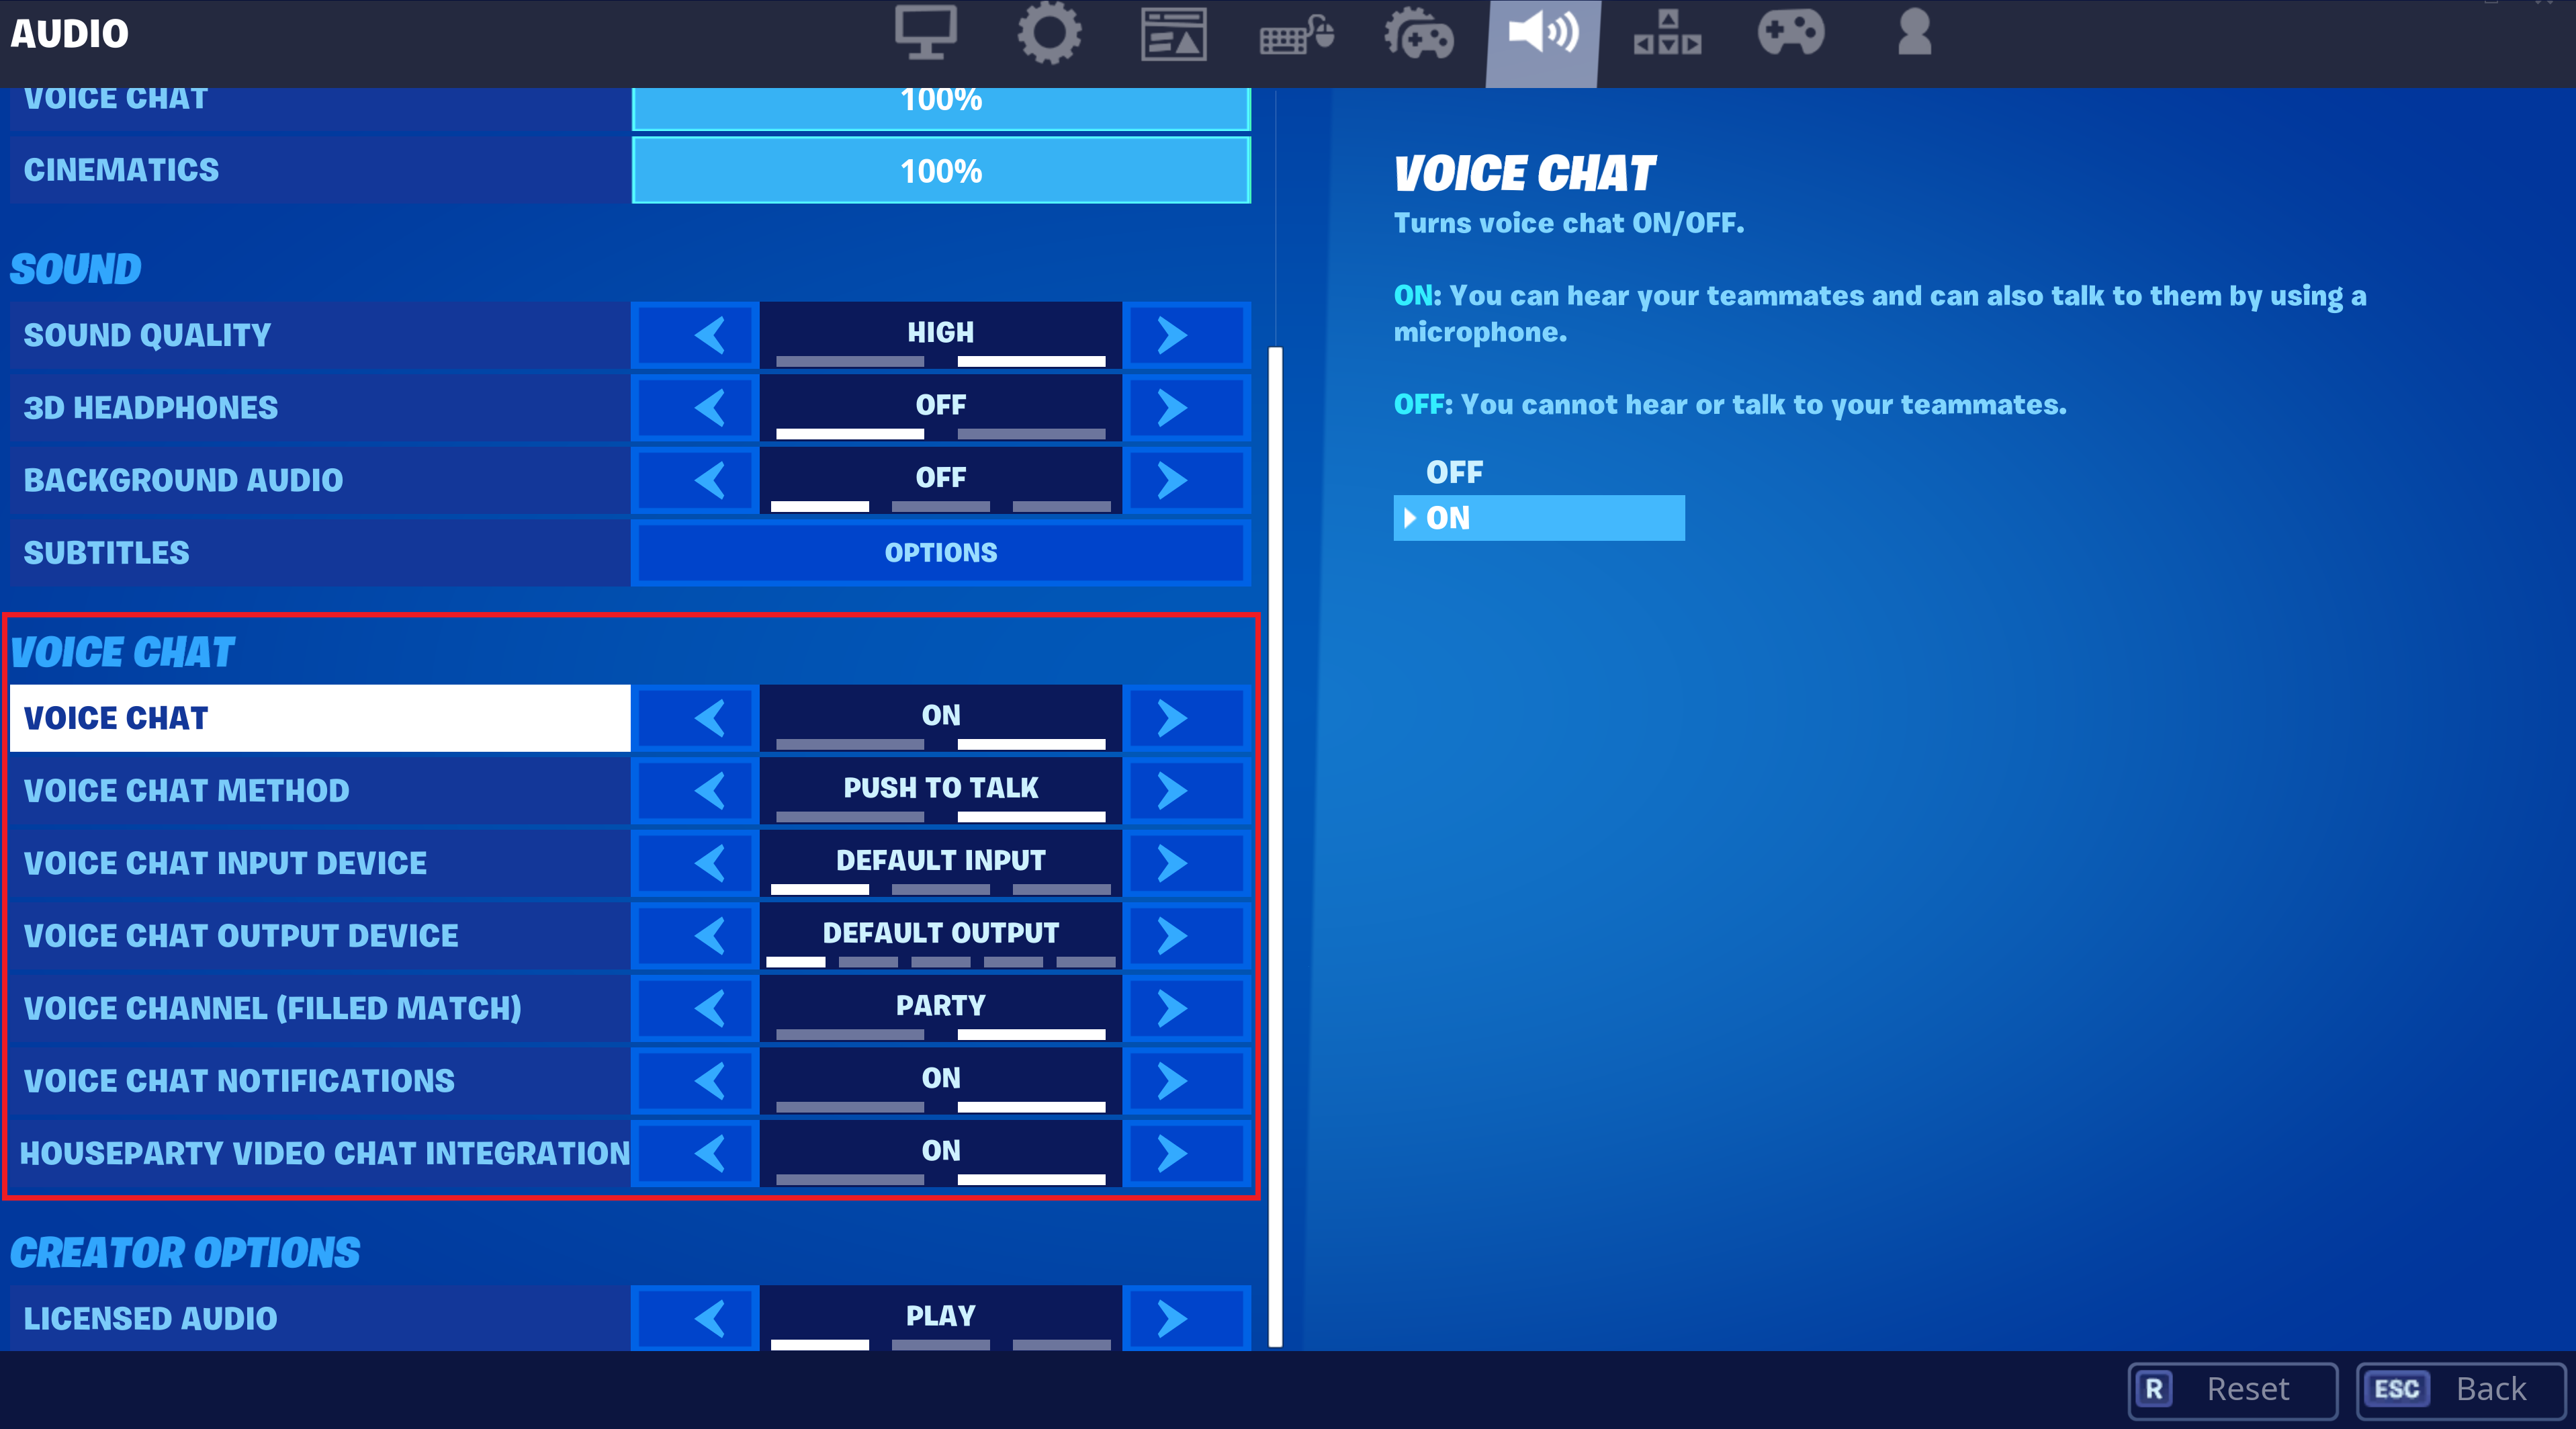 Manage voice chat in Fortnite